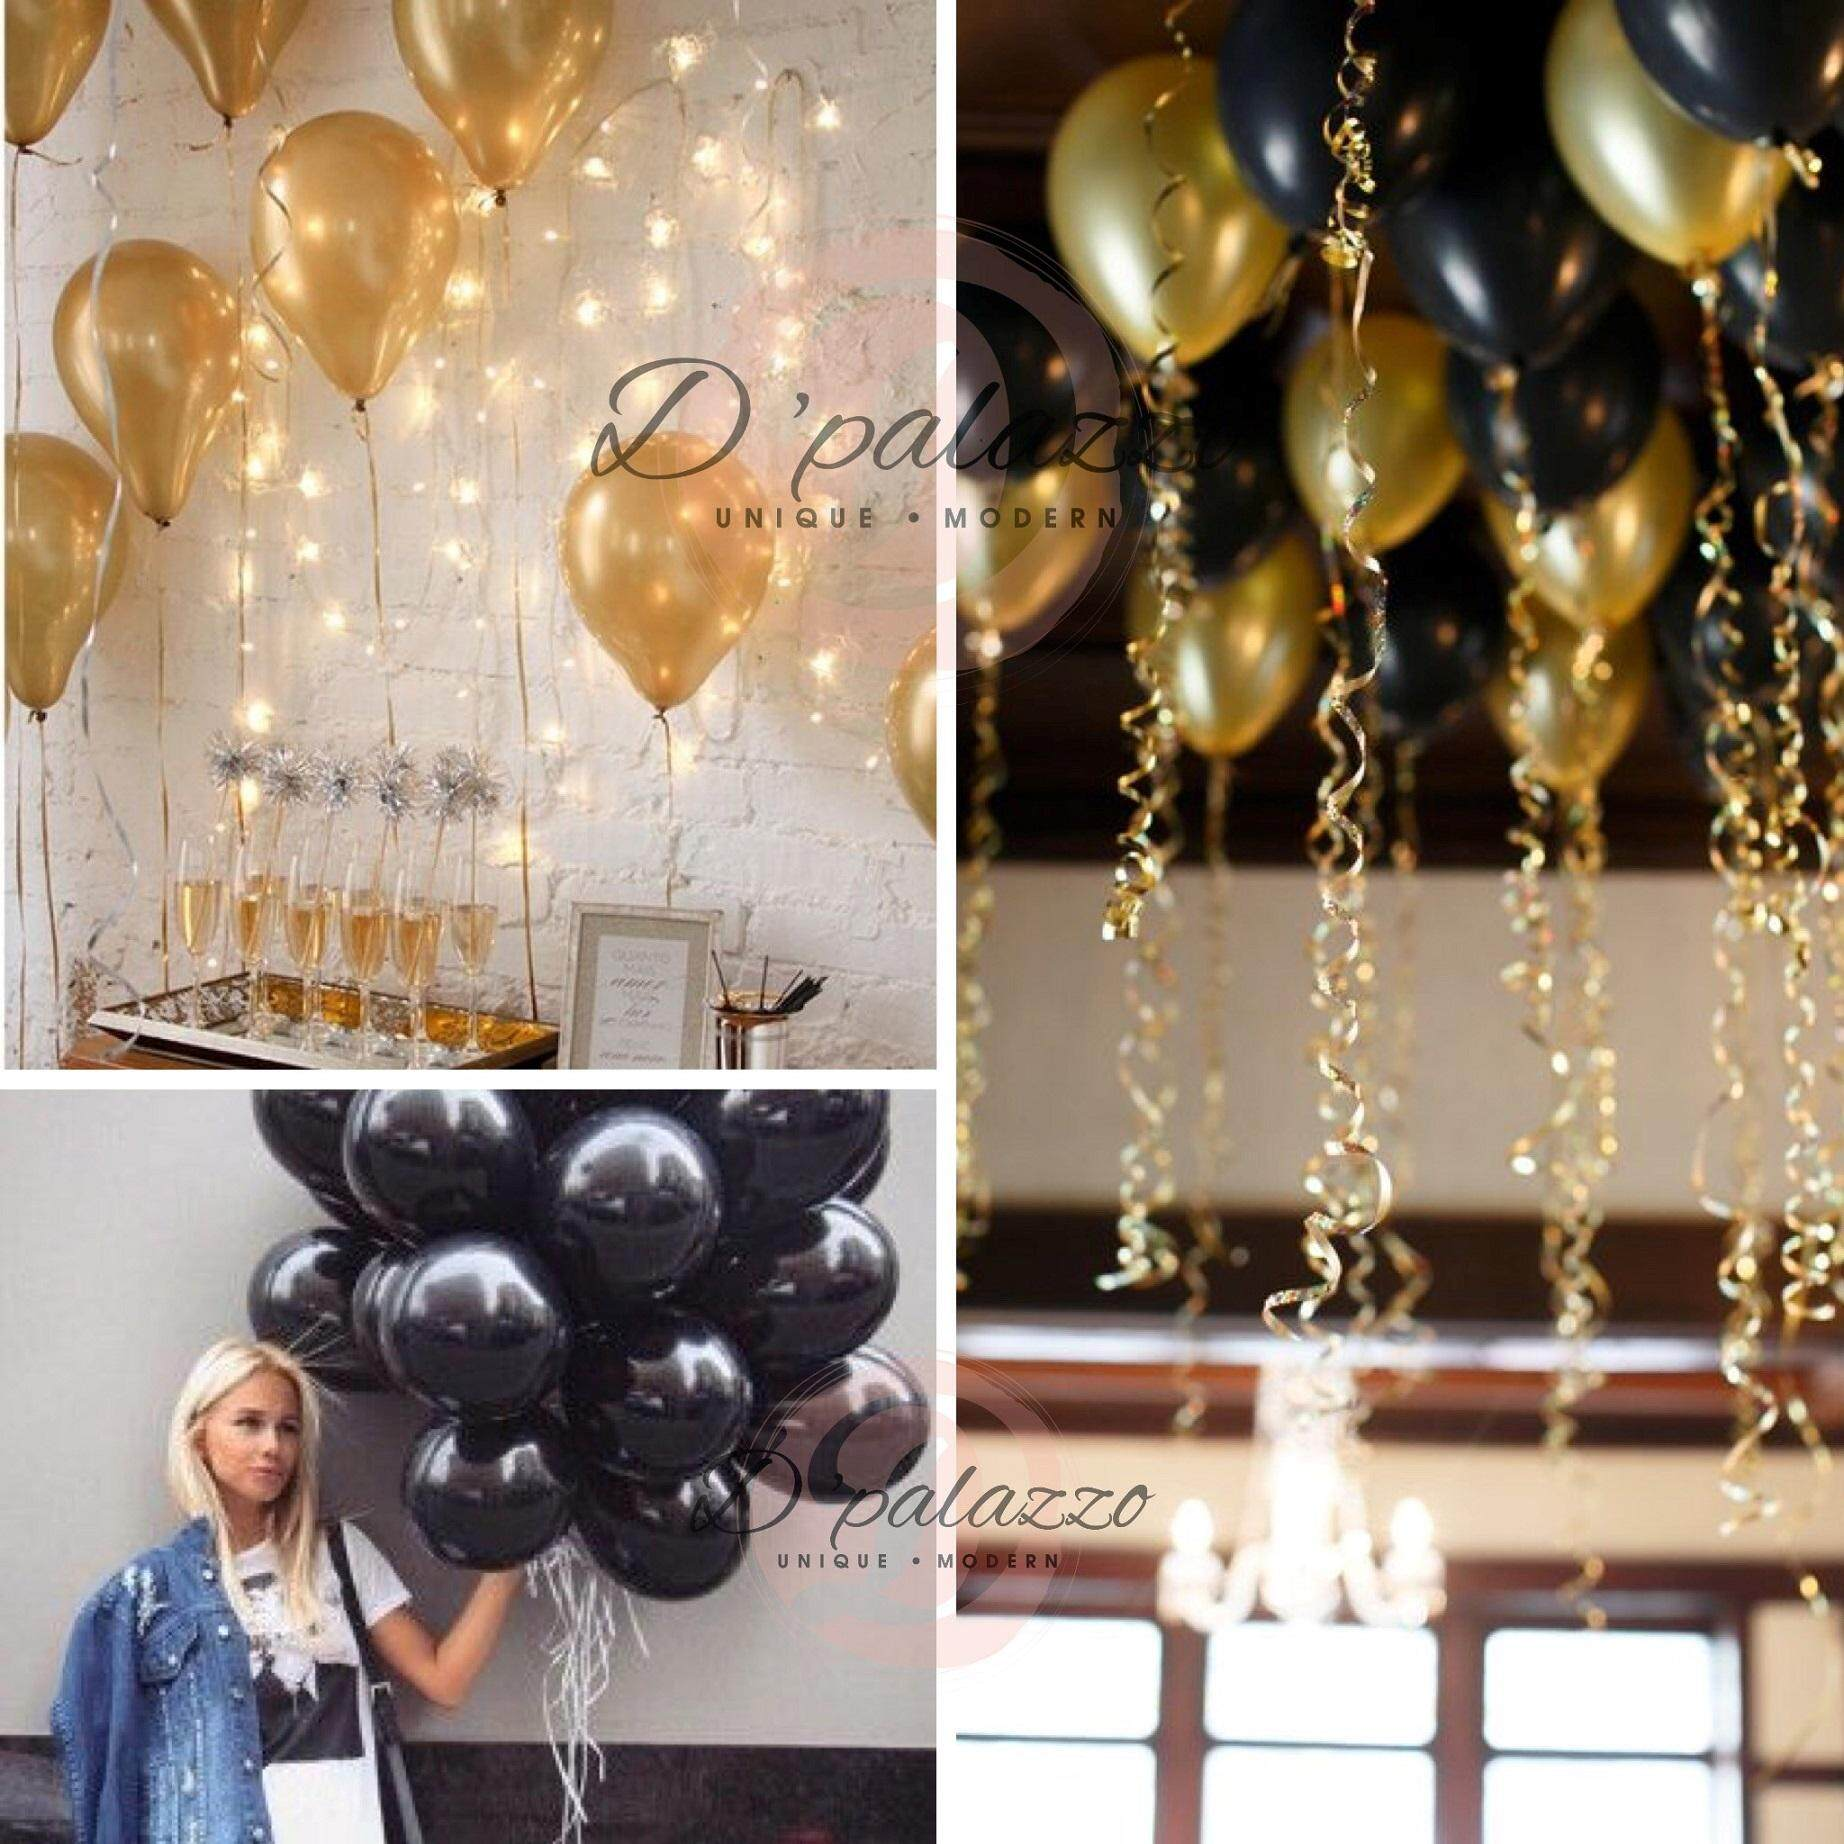 12' Inch 3.2g Thicken Gold Balloon / Black Color Balloon Pearl Latex 10/20/50 By D Palazzo.